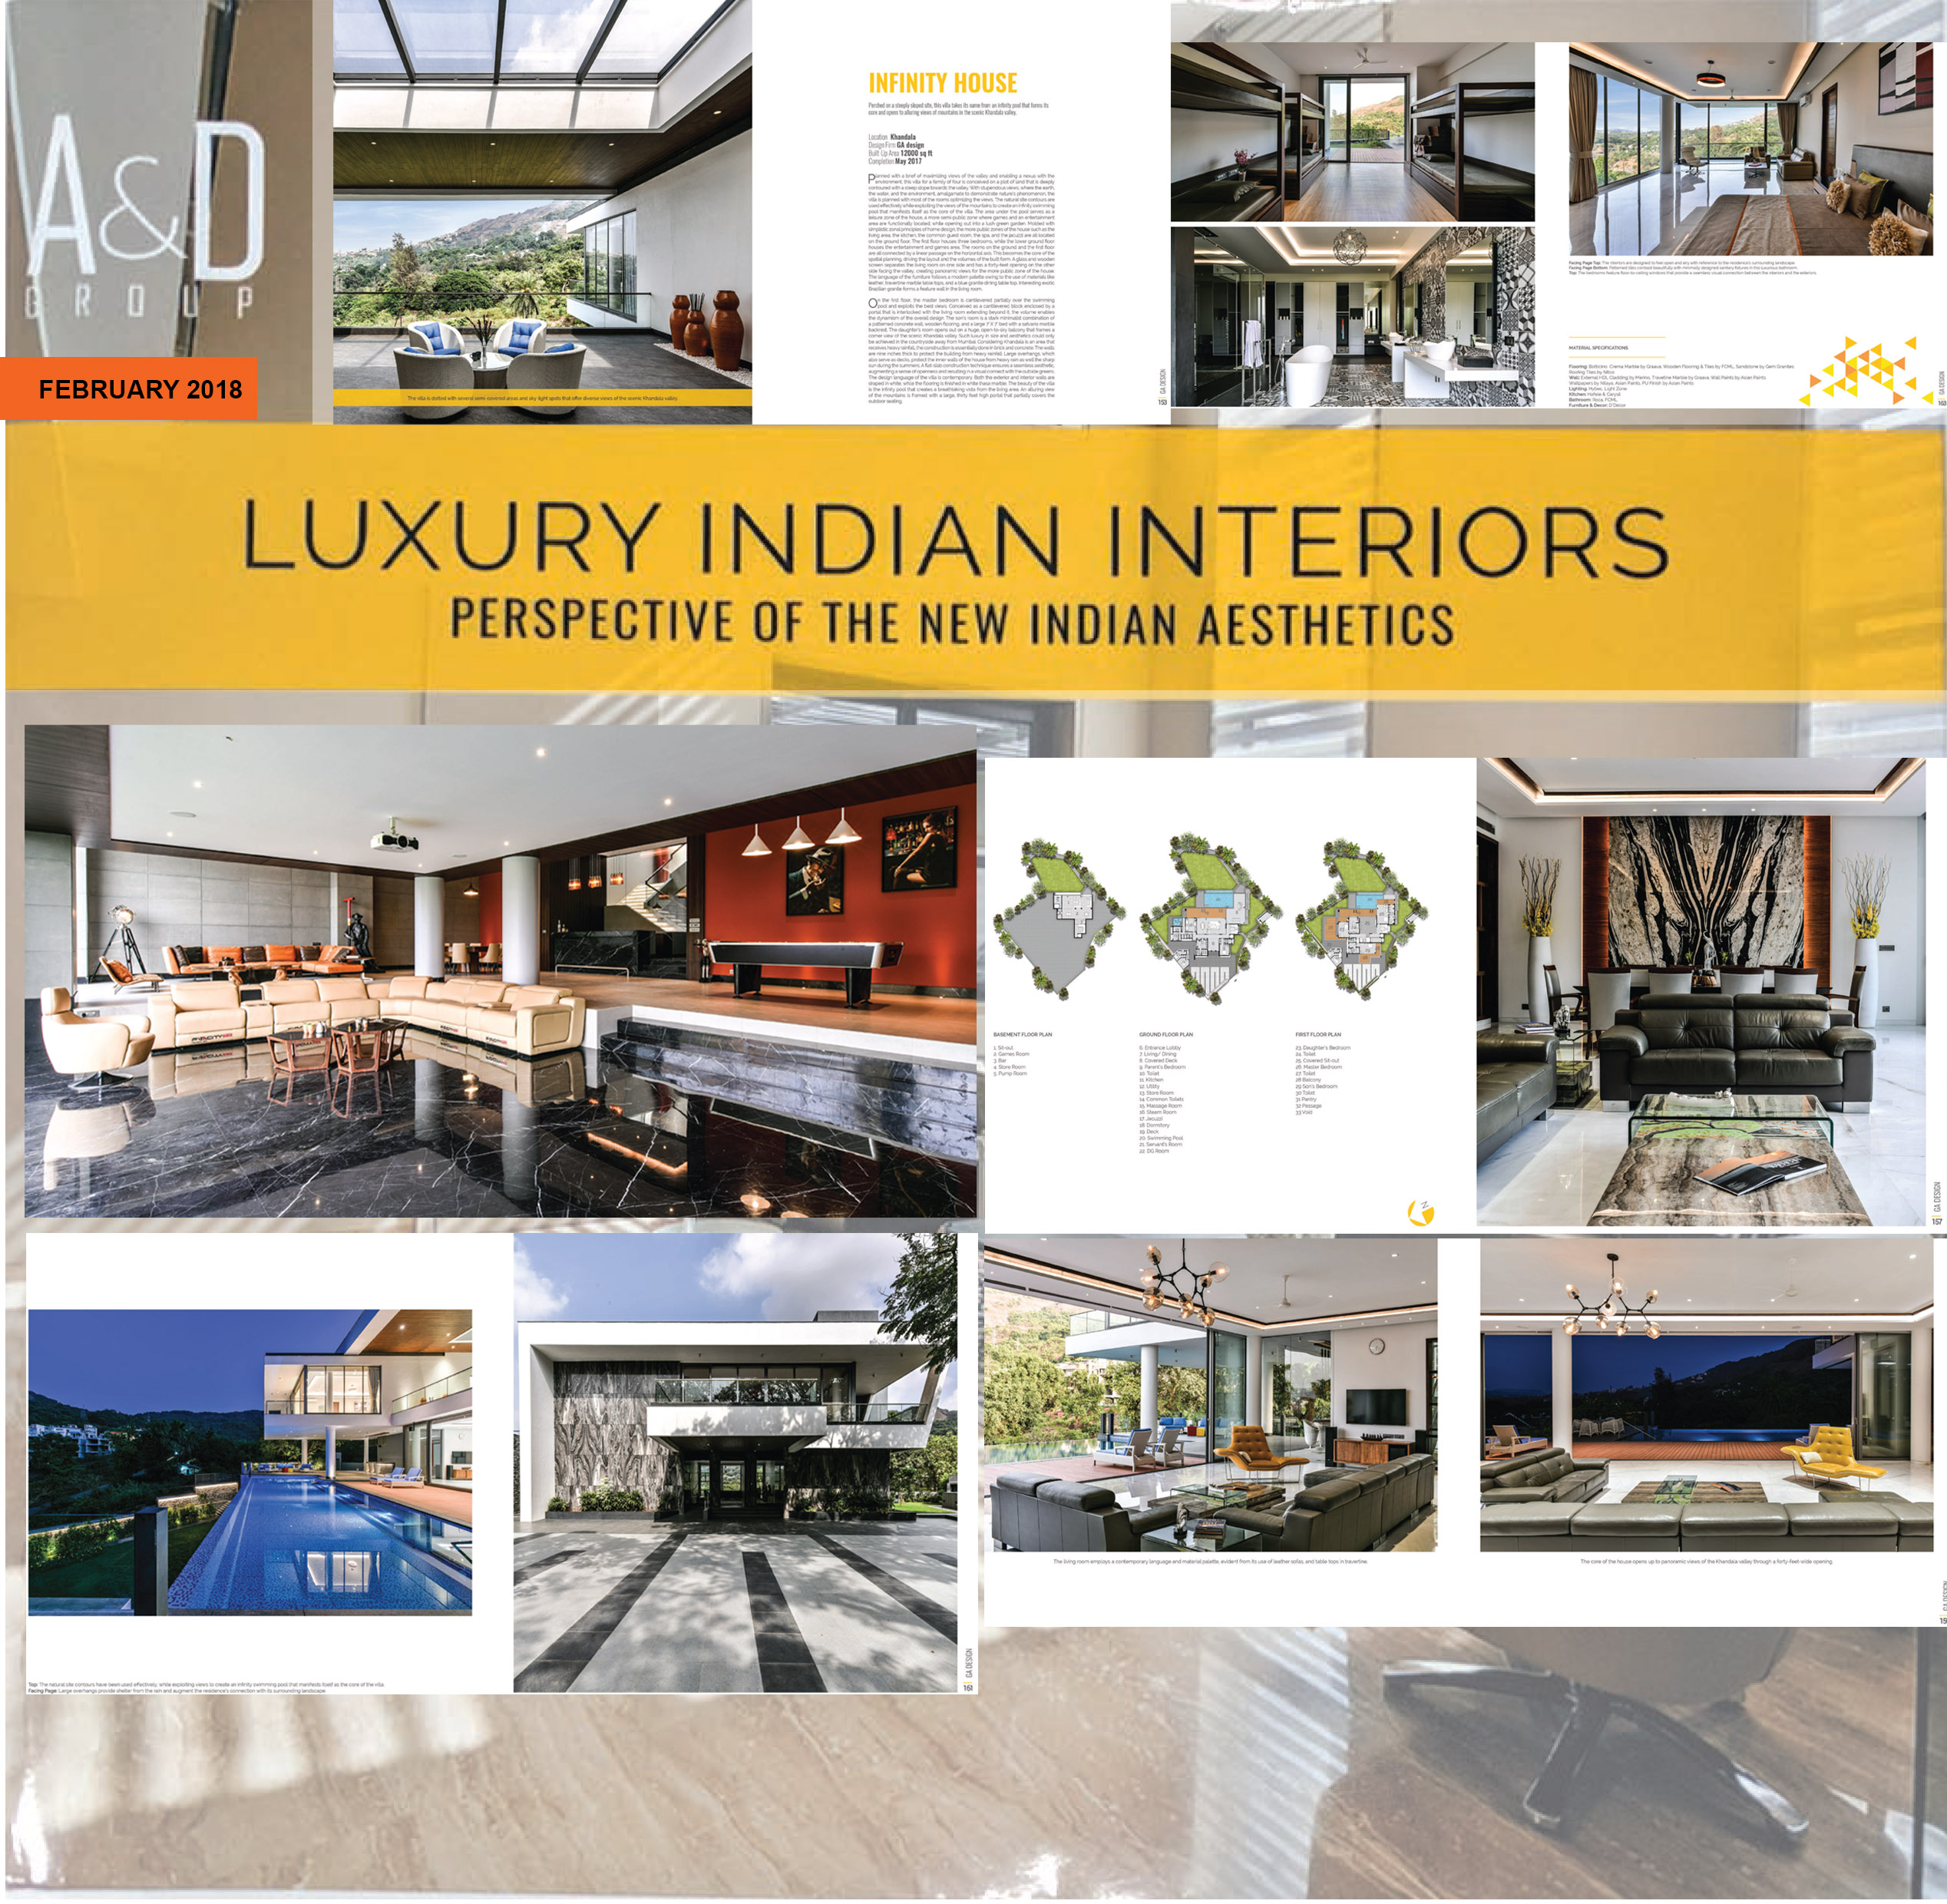 Luxury Indian Interiors_Feb 2018